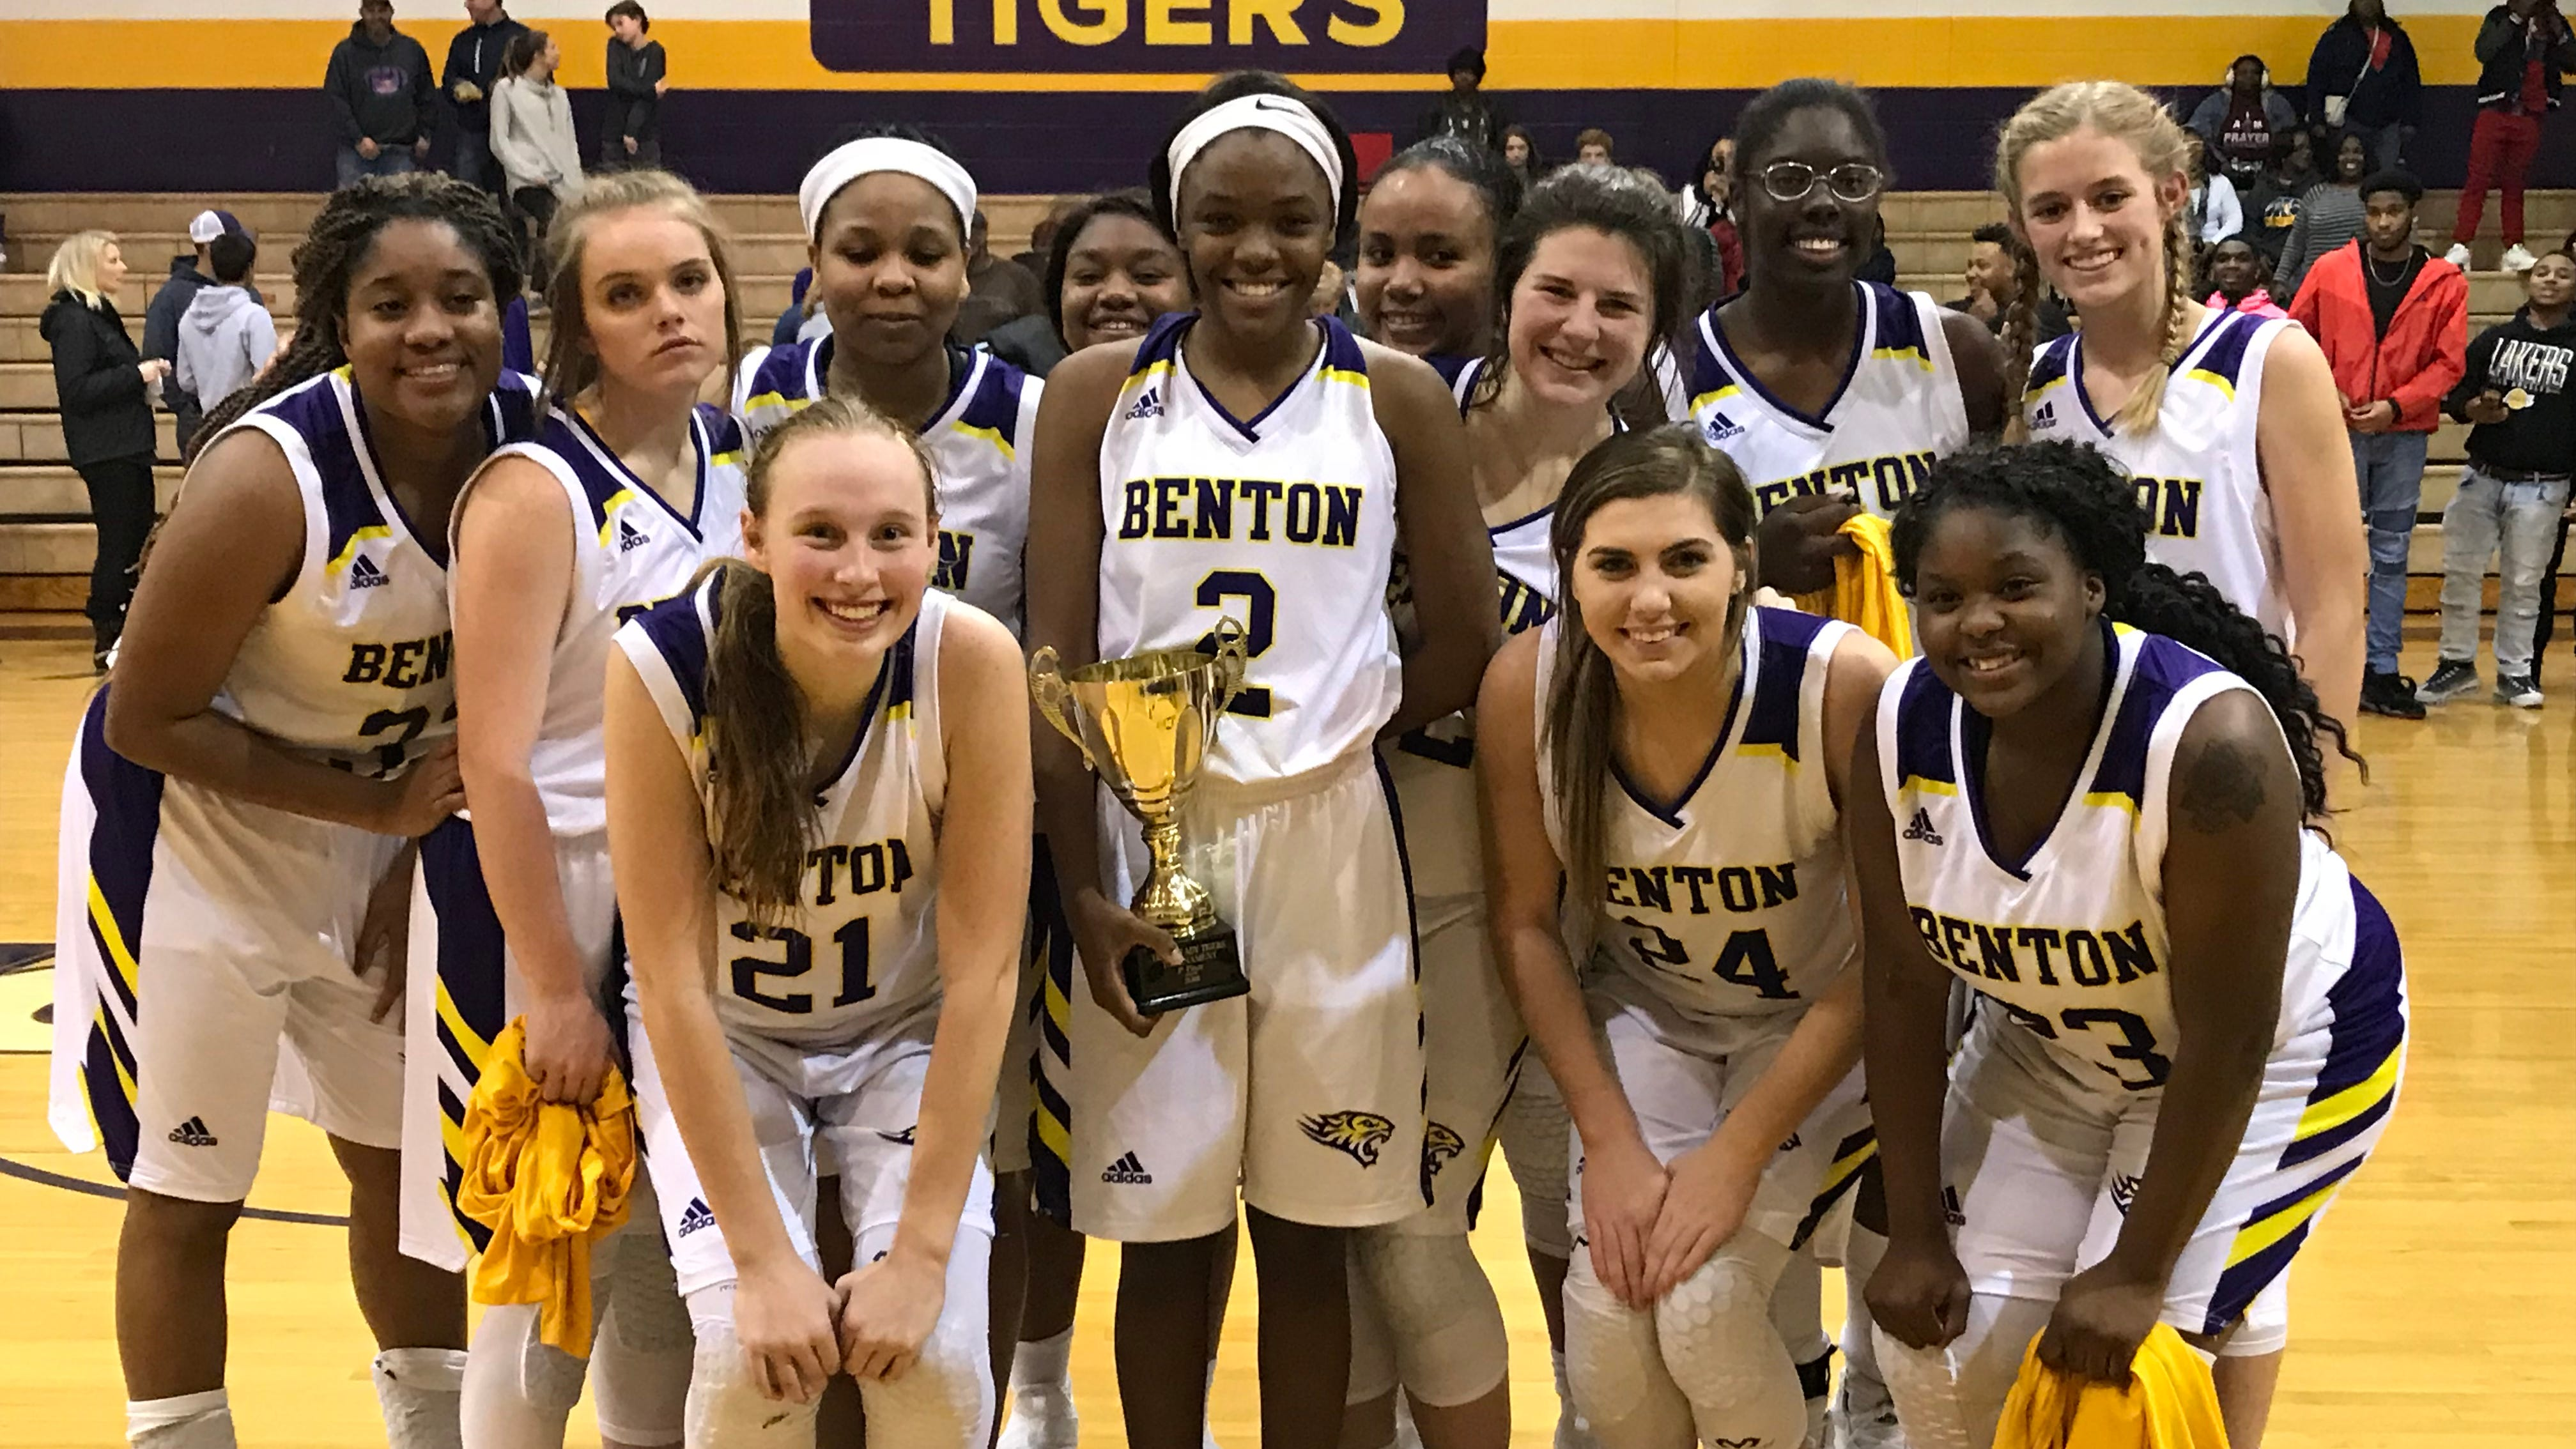 The Benton girls basketball team captured first place in their own tournament Saturday with a 74-57 win over Ouachita. The Lady Tigers are 12-0.